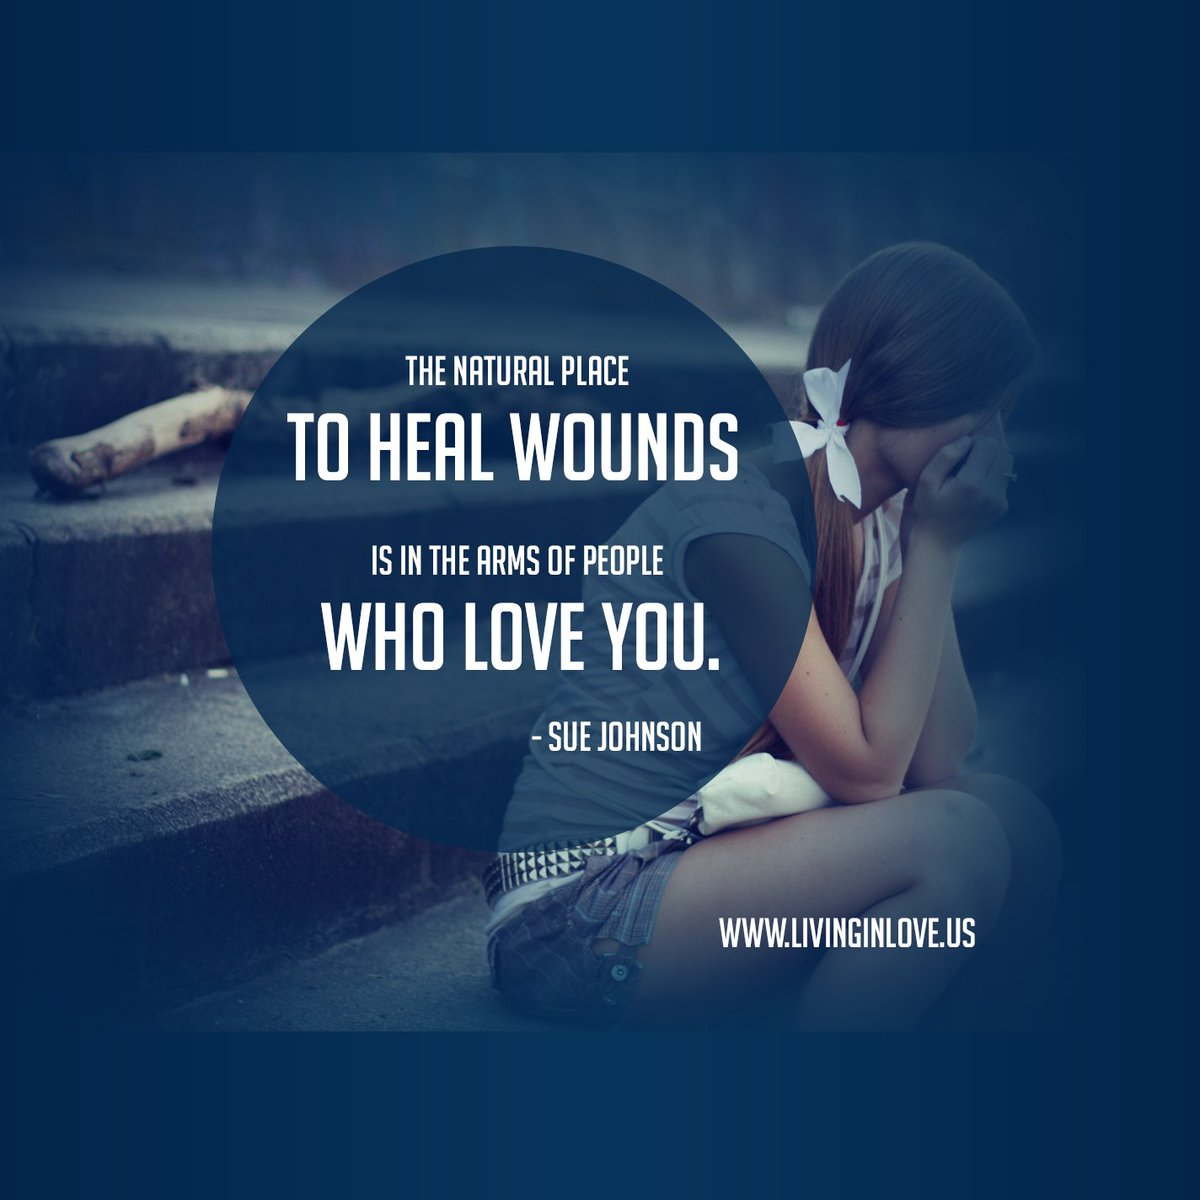 The natural place to heal wounds is in the arms of people who love you. @Dr_SueJohnson #EFT #LOVE #Relationship https://t.co/s5Z0u5TDsC